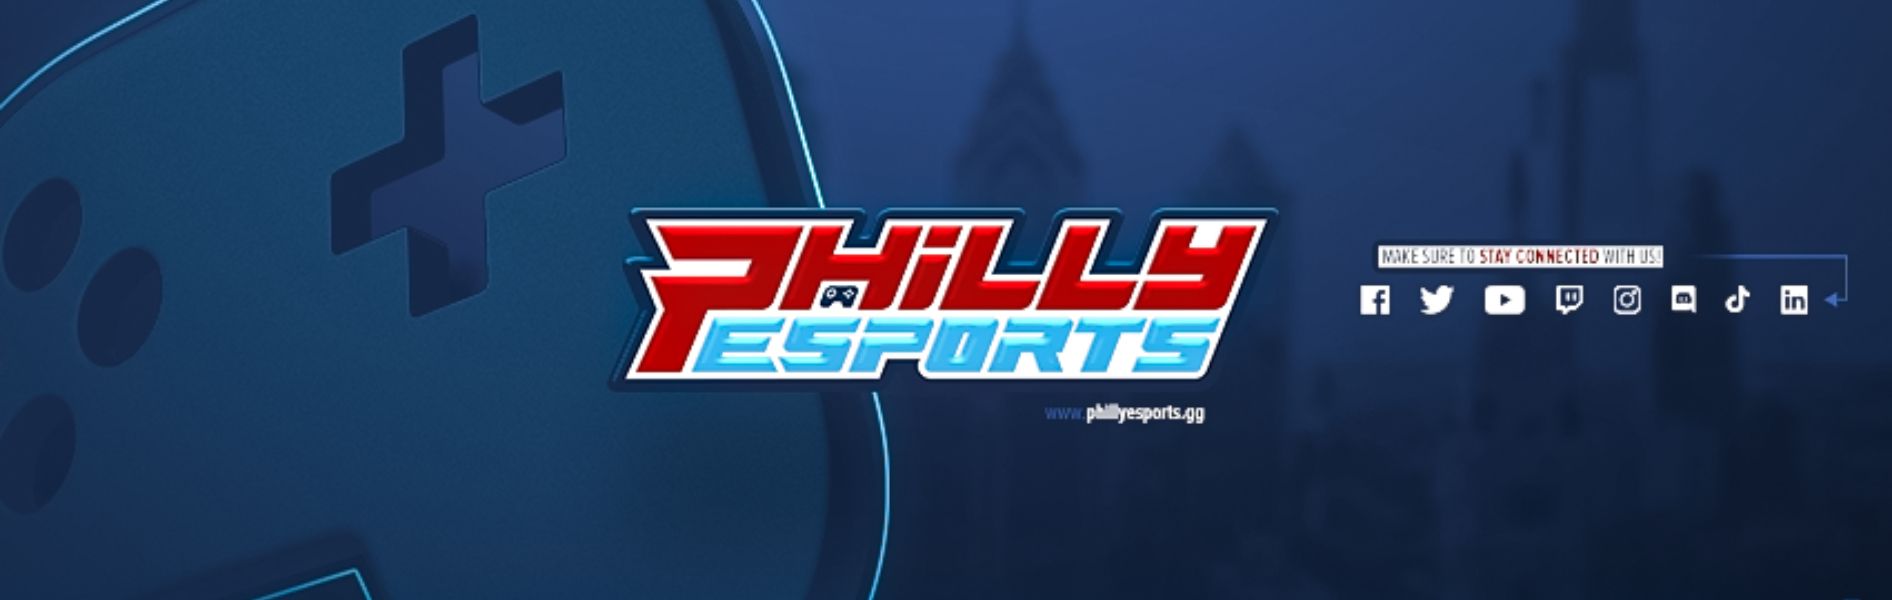 Philly Esports Banner